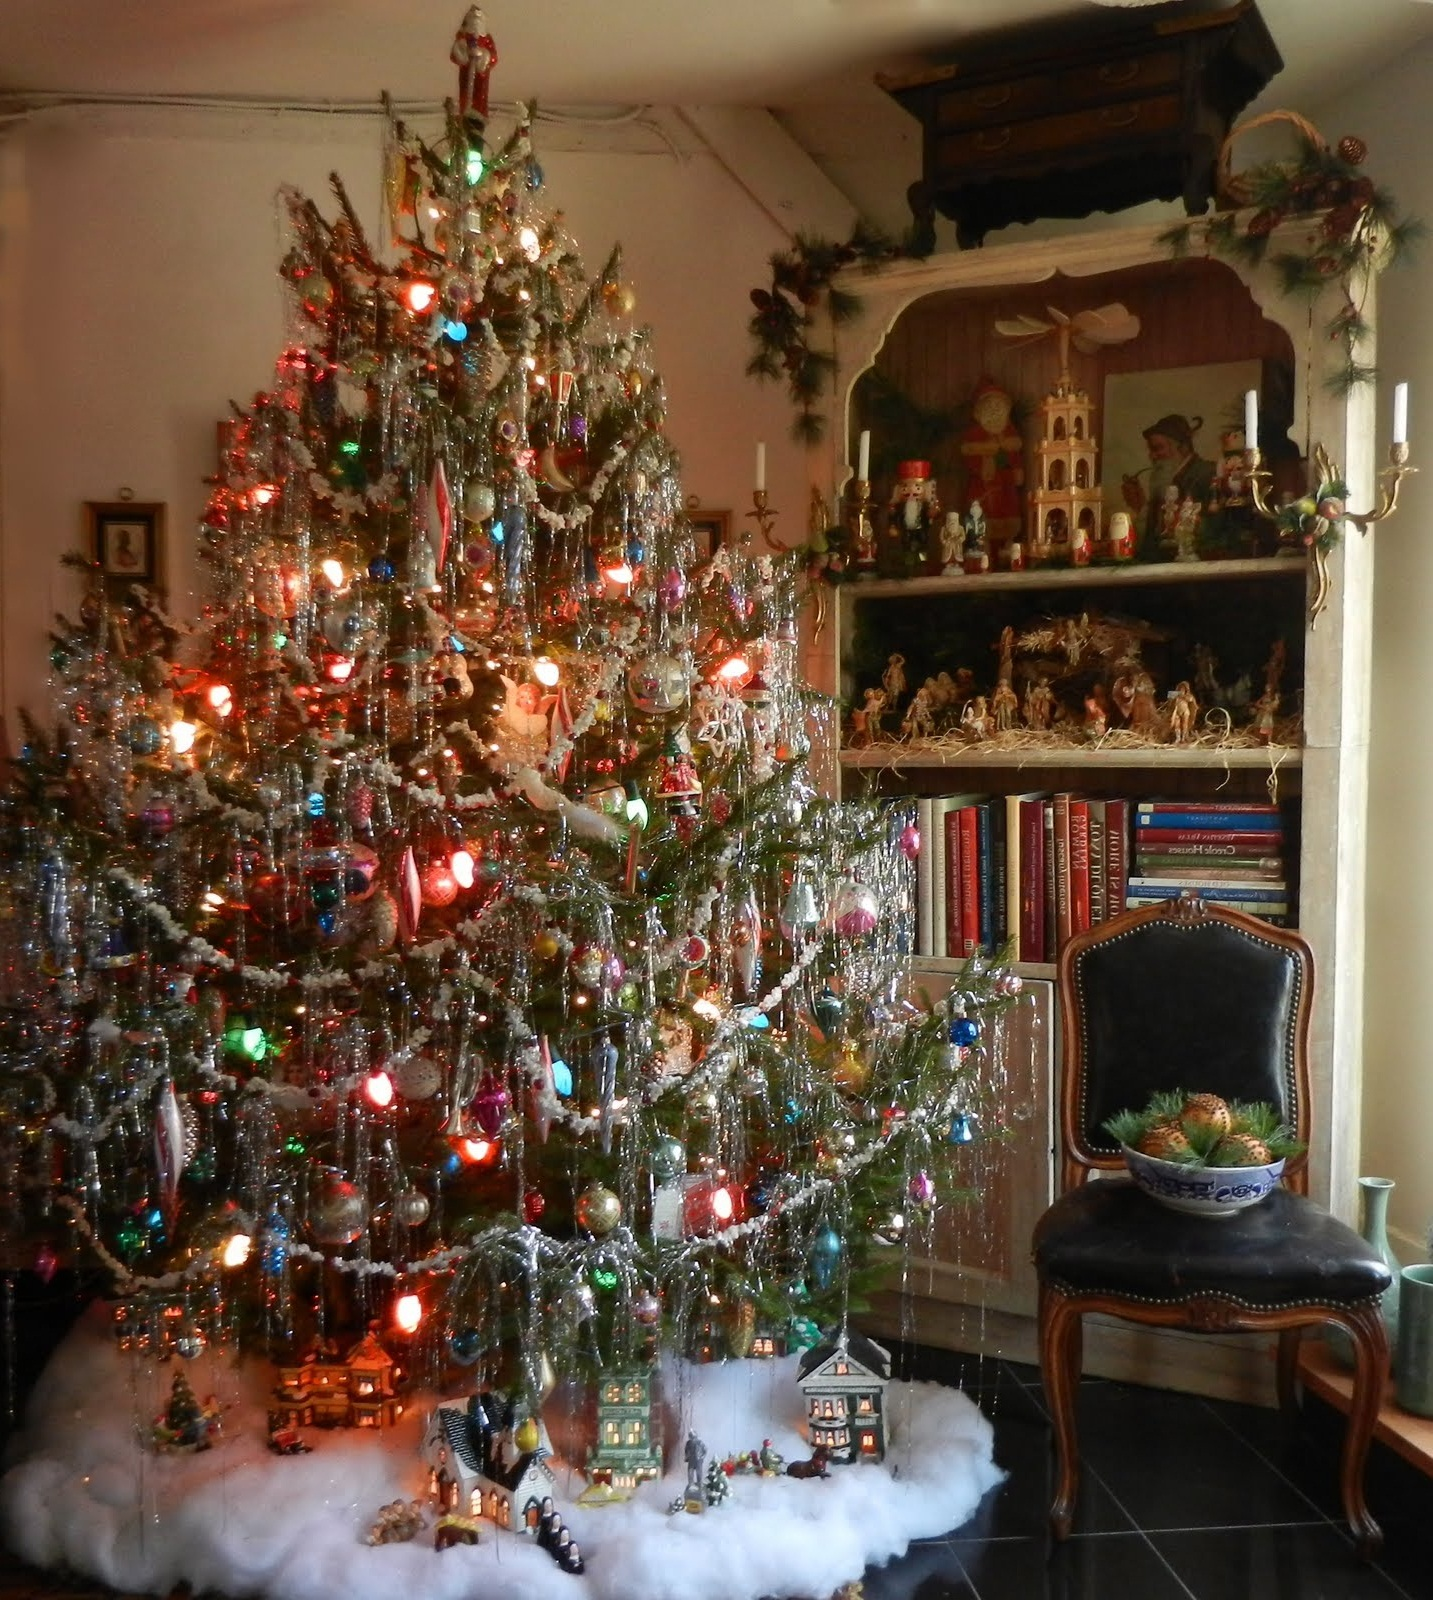 top vintage christmas decorations - Christmas Tree Decorated With Vintage Ornaments